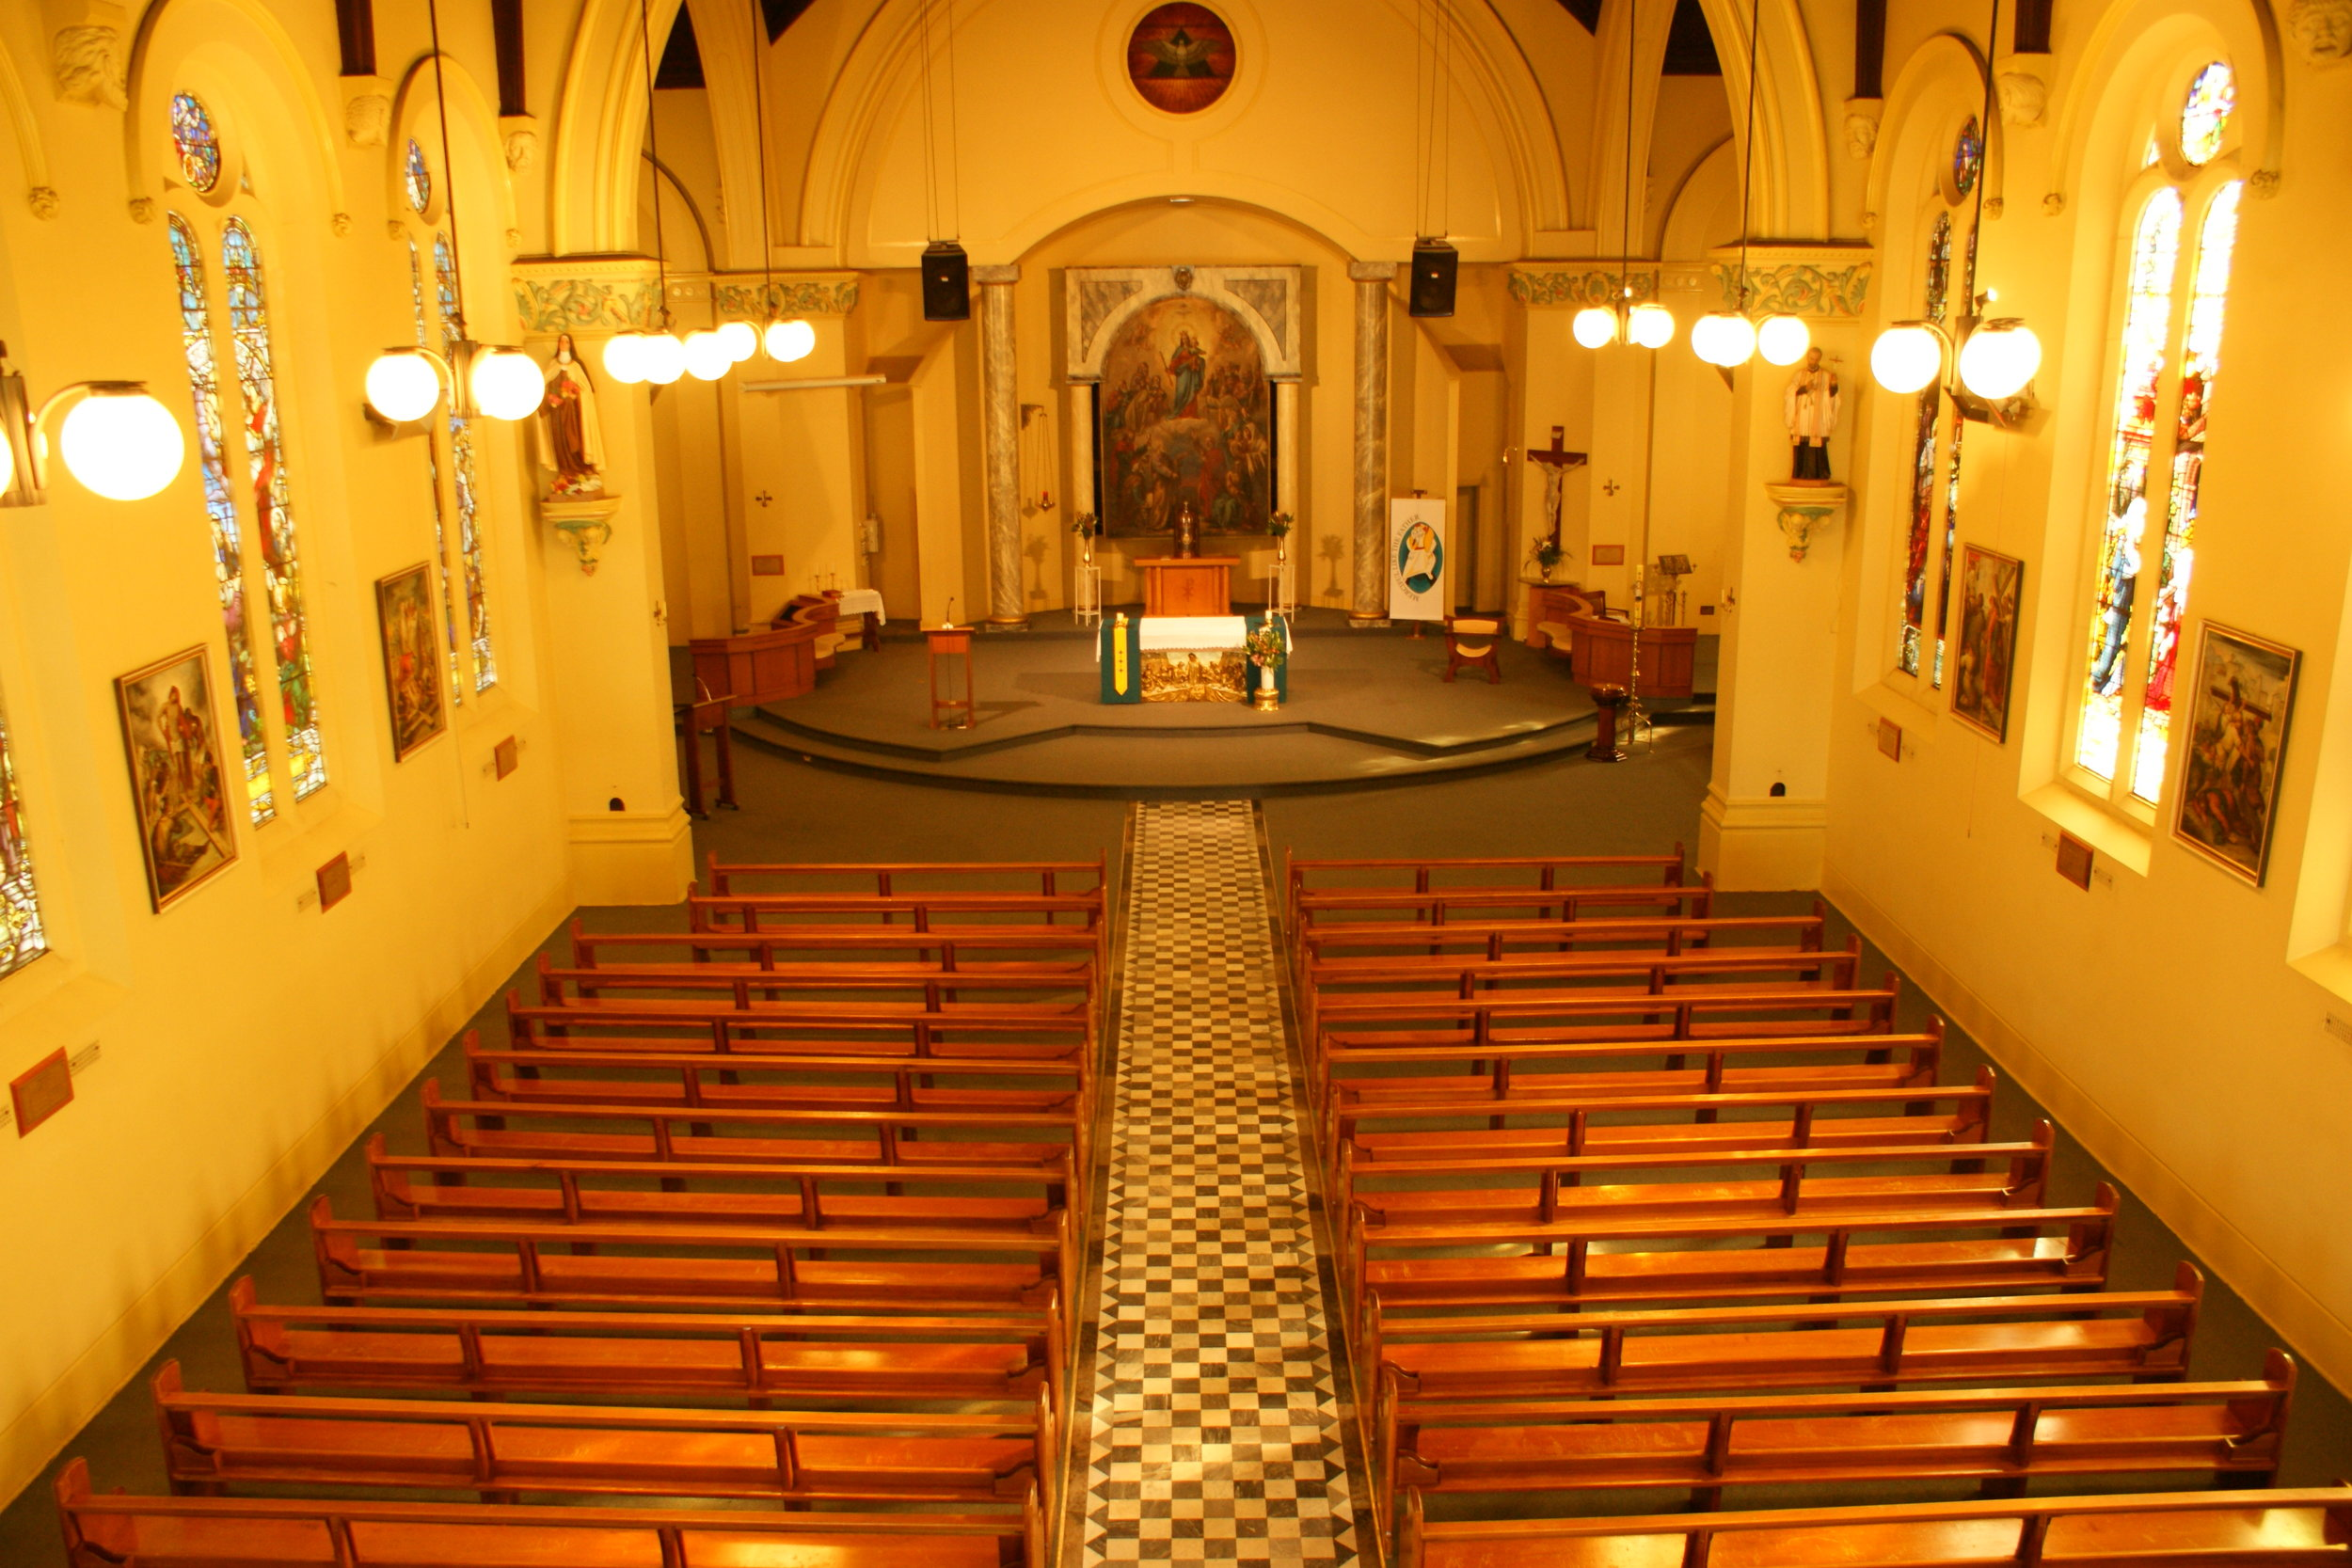 The interior of Our Lady's Church